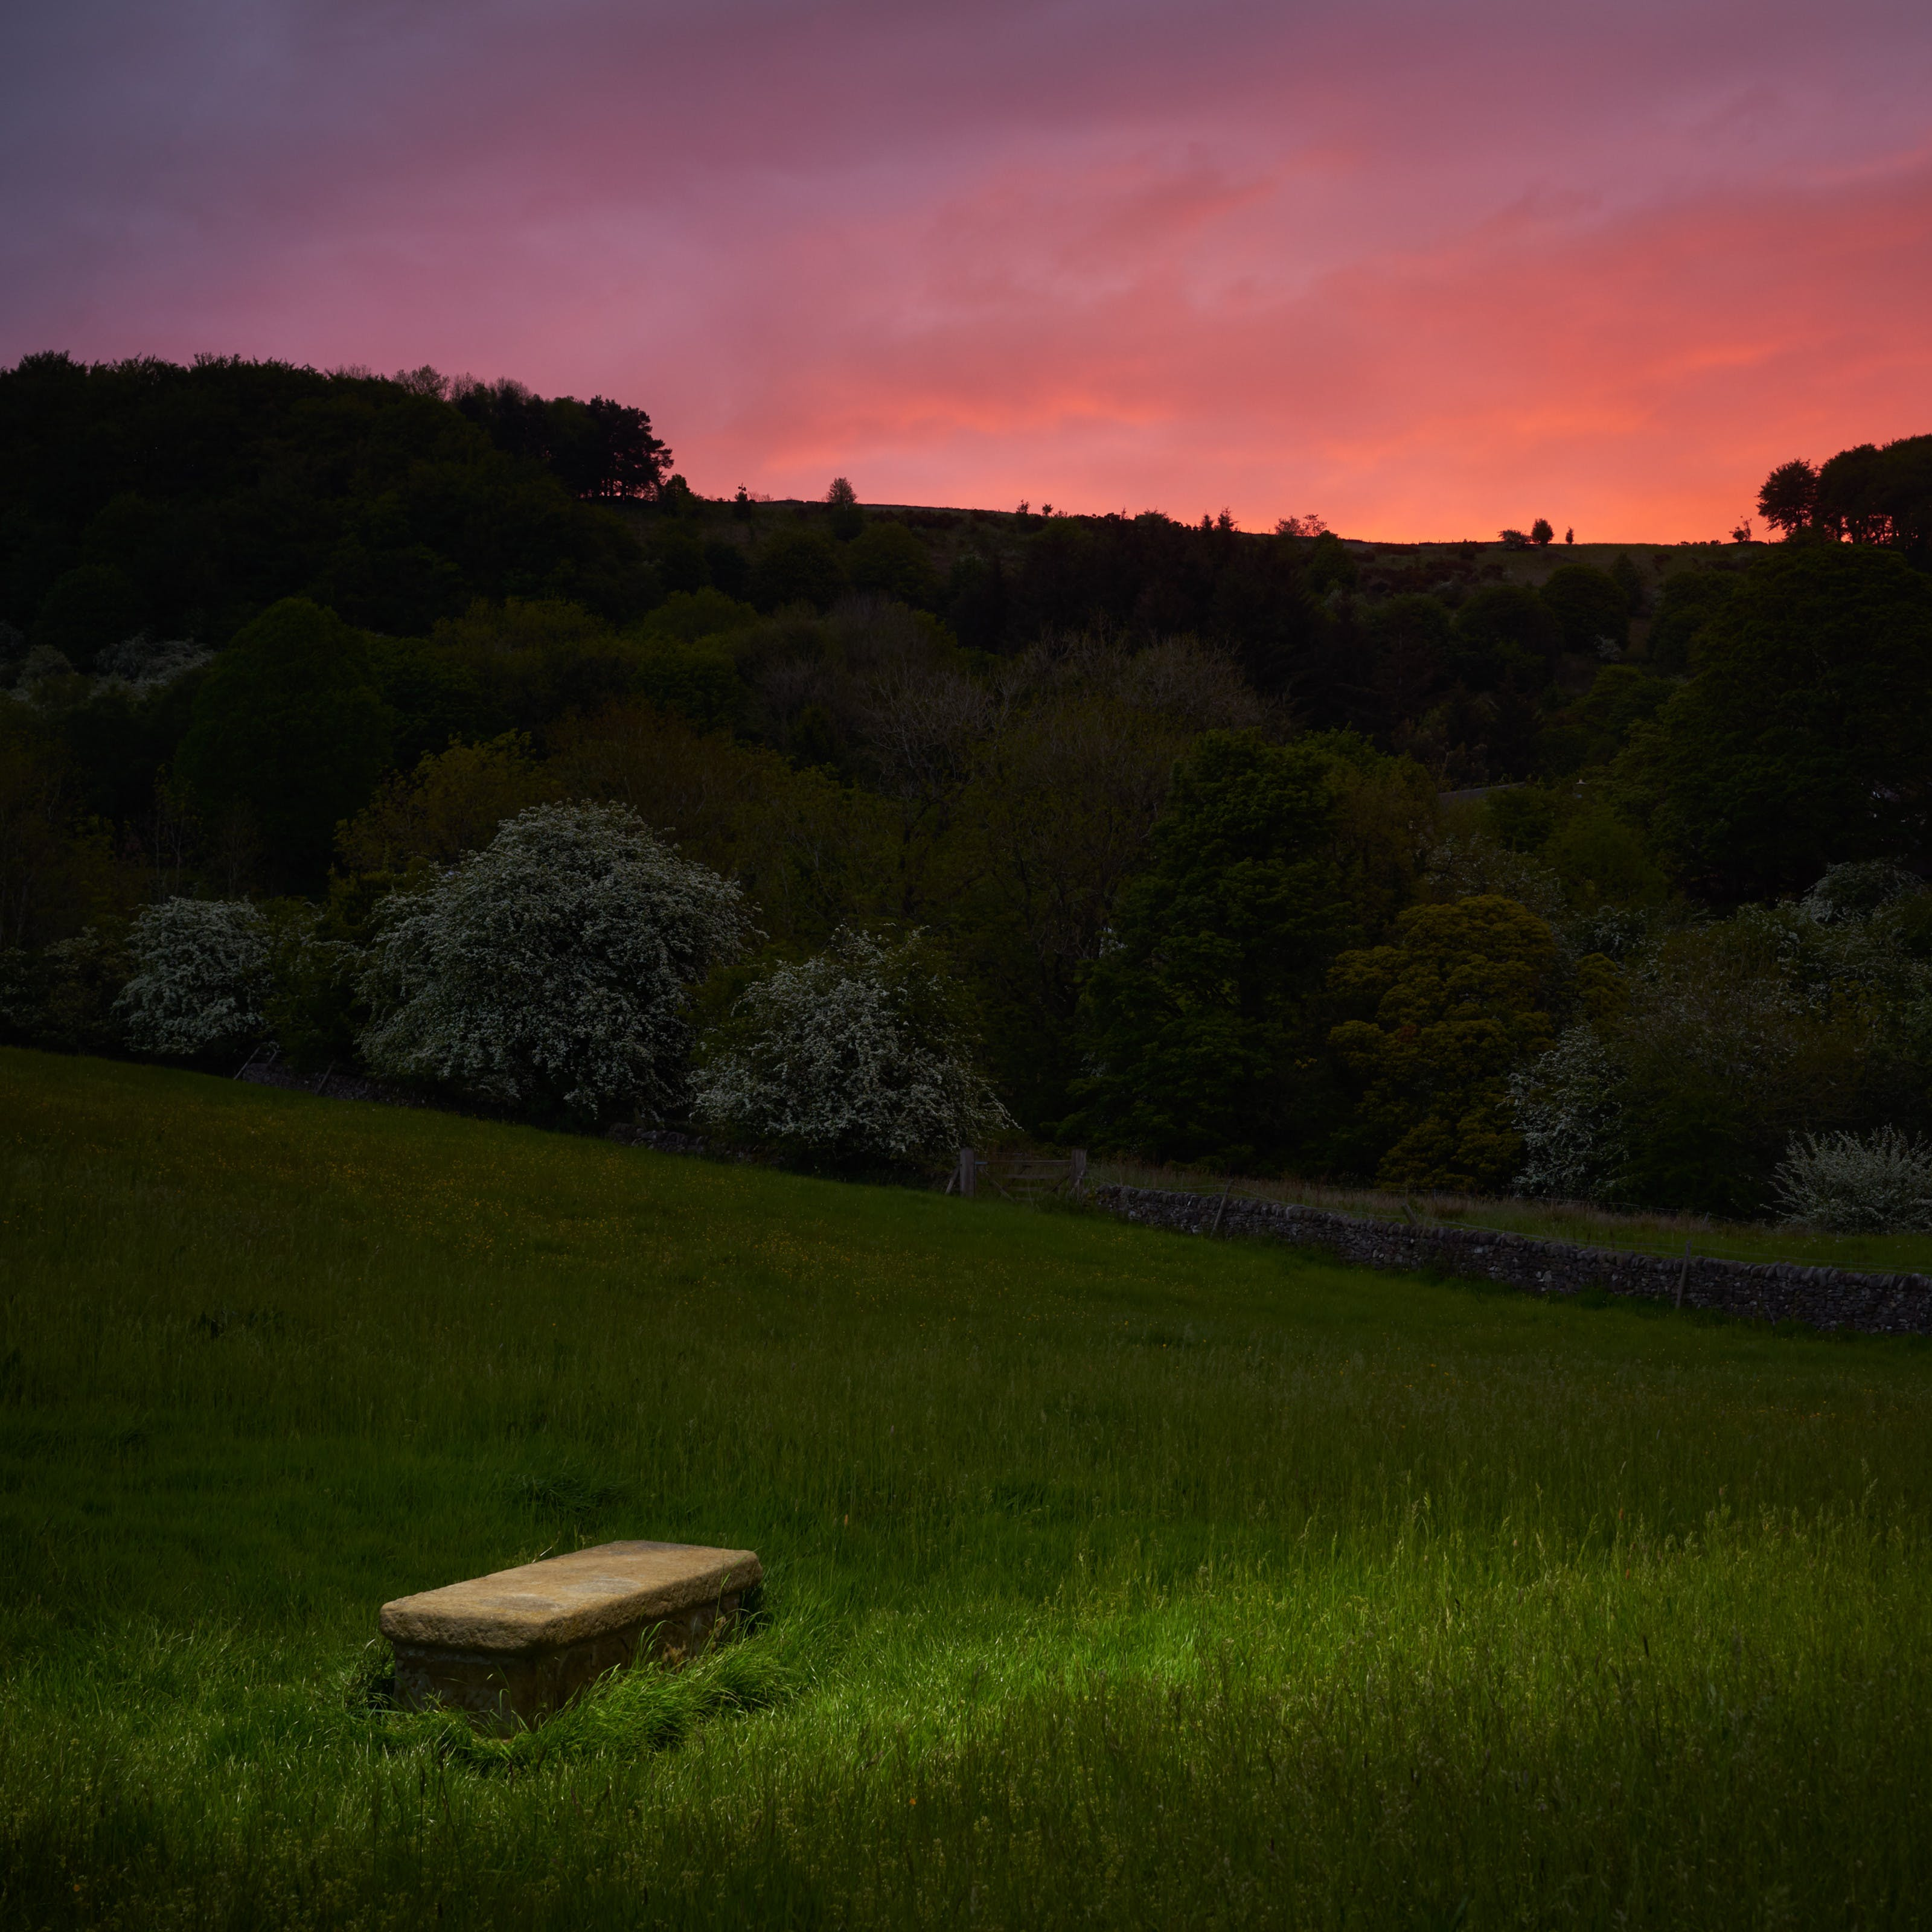 Photograph of a rural landscape at dusk. In the background is a dramatic red sky. In the foreground is a spotlit plain stone grave.